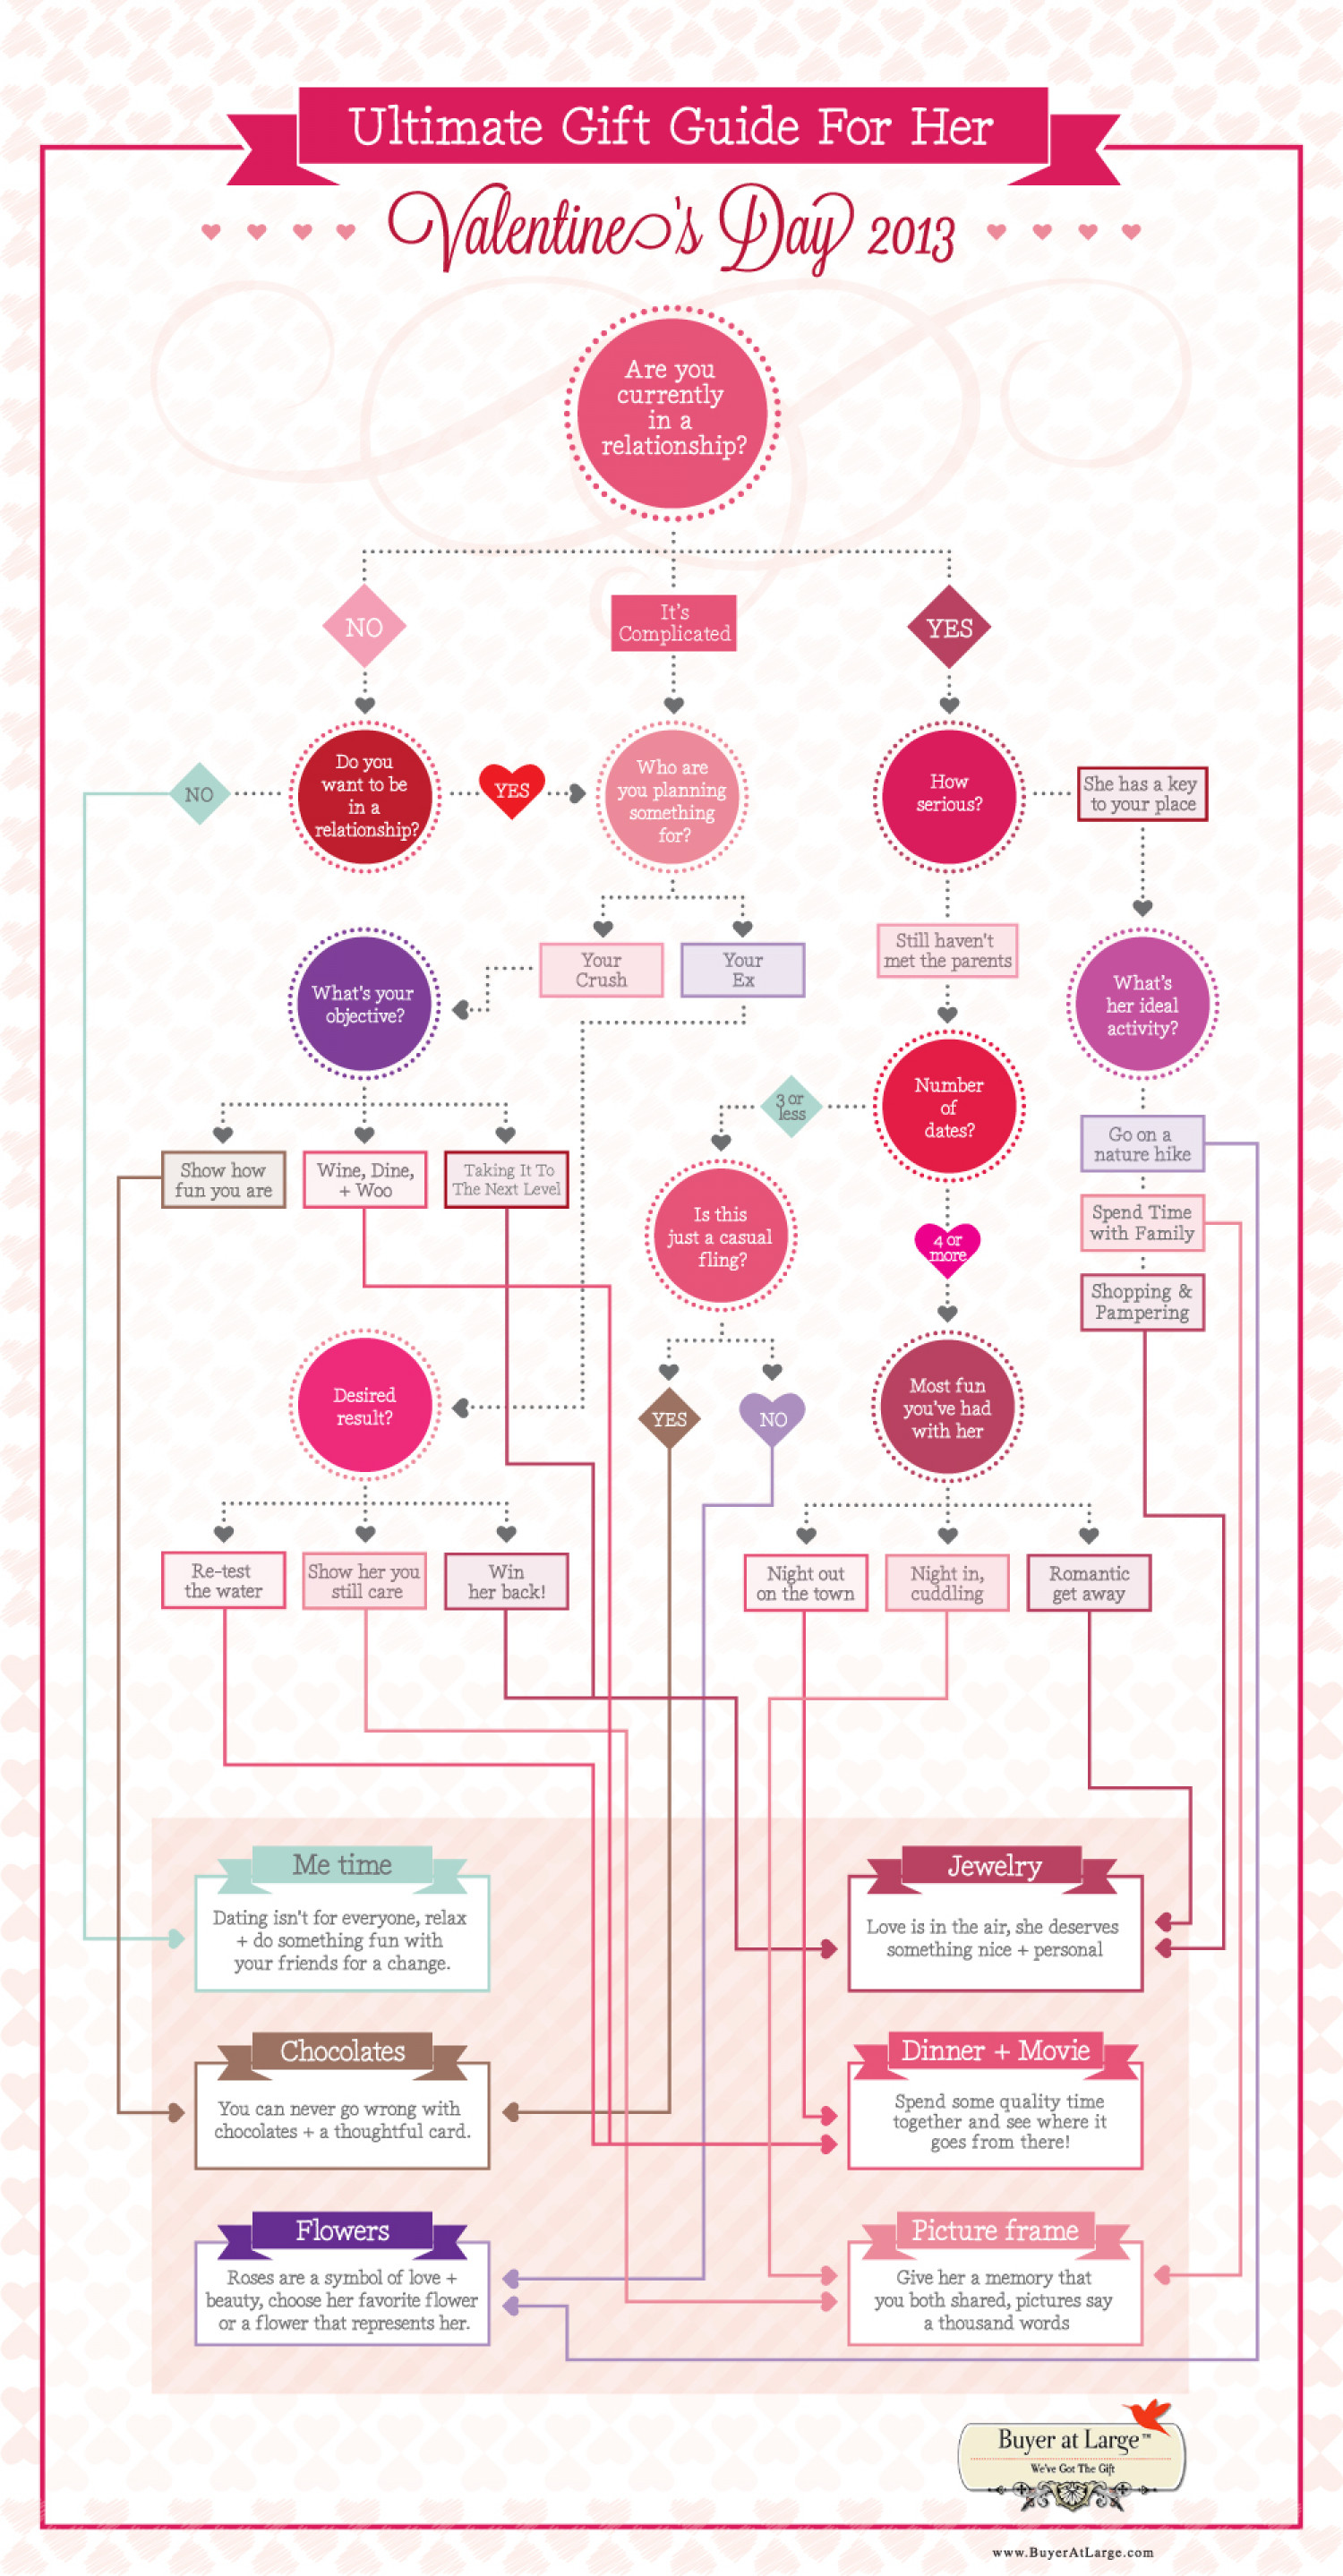 Valentine's Day 2013 - Ultimate Gift Guide for Her | Visual.ly